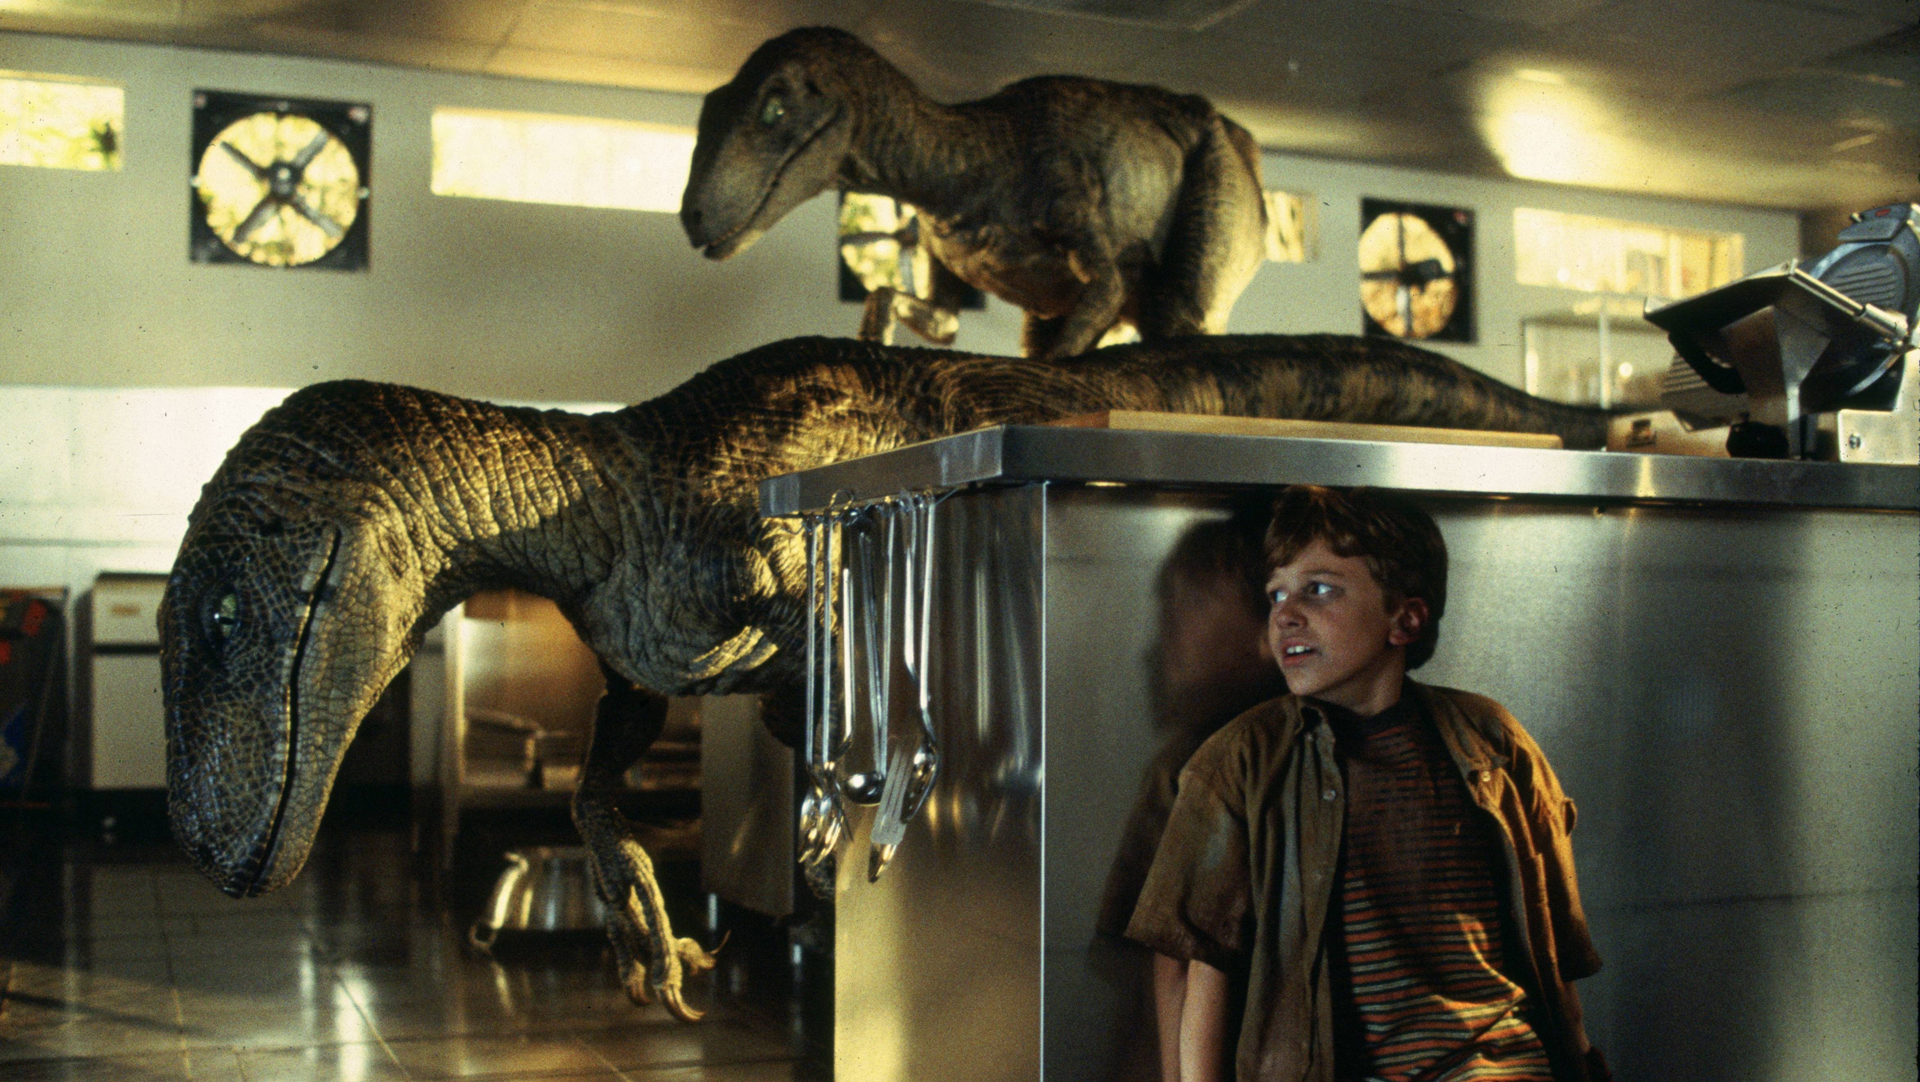 Jurassic Park Unearthing A Blockbuster The Amherst Student